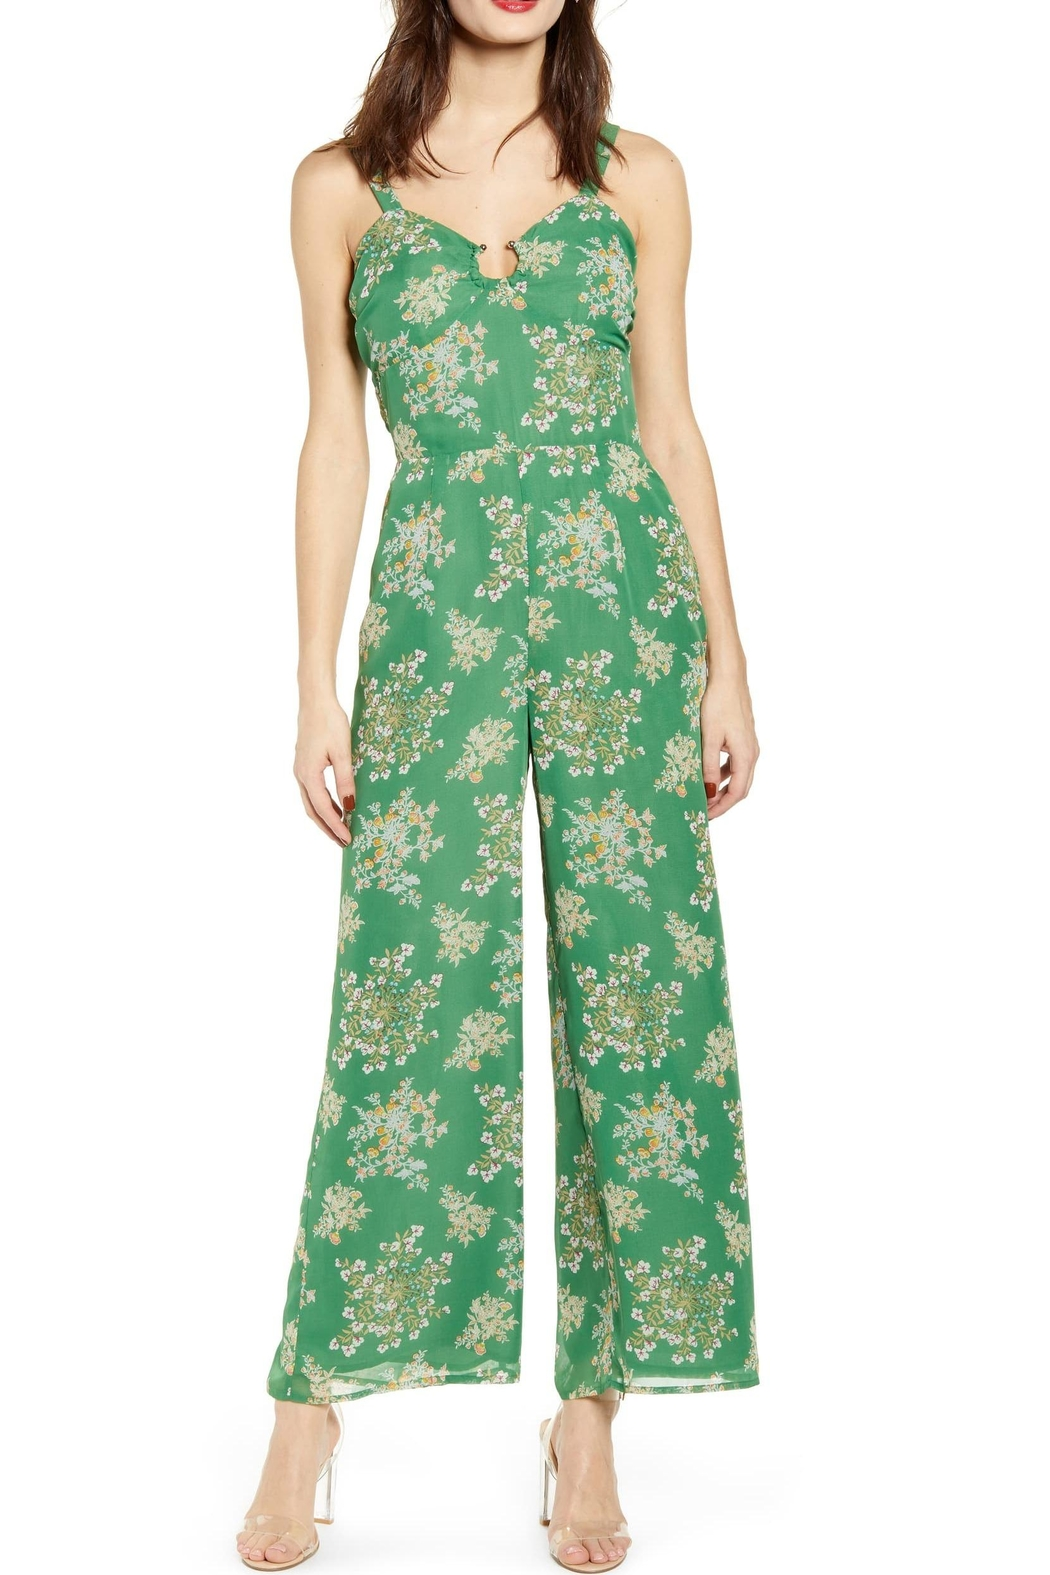 J.O.A. Floral Sleeveless Jumpsuit - Main Image